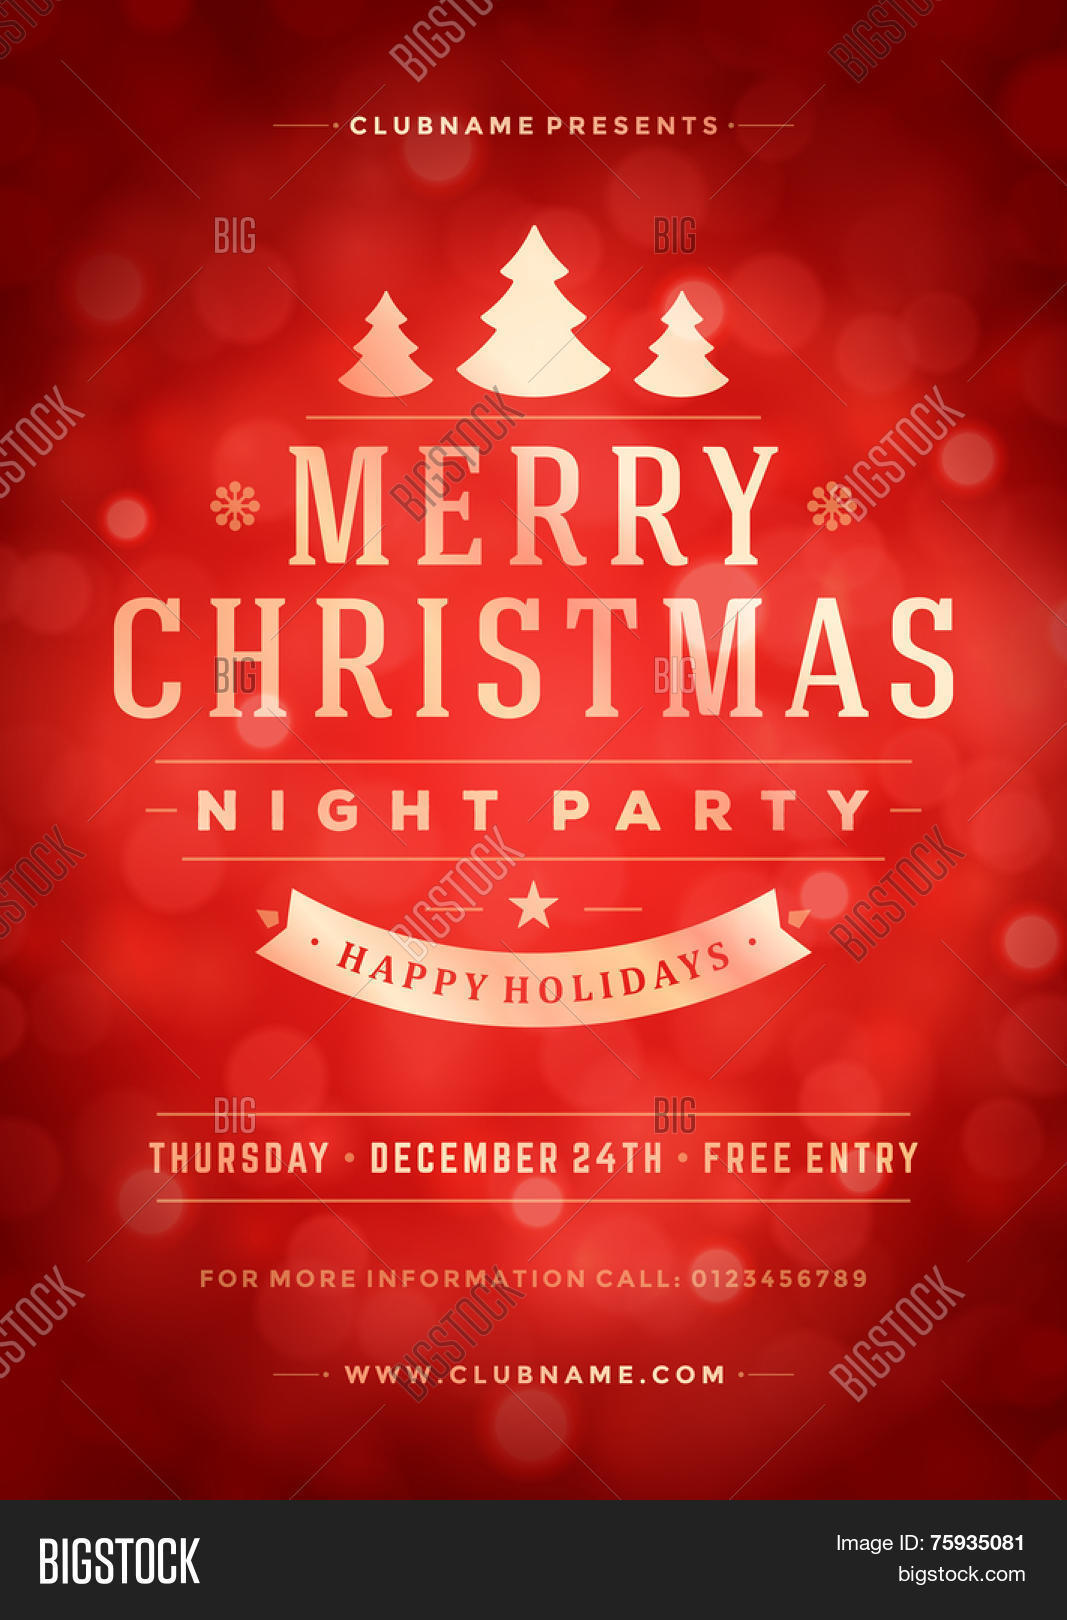 Free christmas poster design templates - Christmas Night Party Poster Or Flyer Vector Illustration Merry Christmas Design Template Vector Background